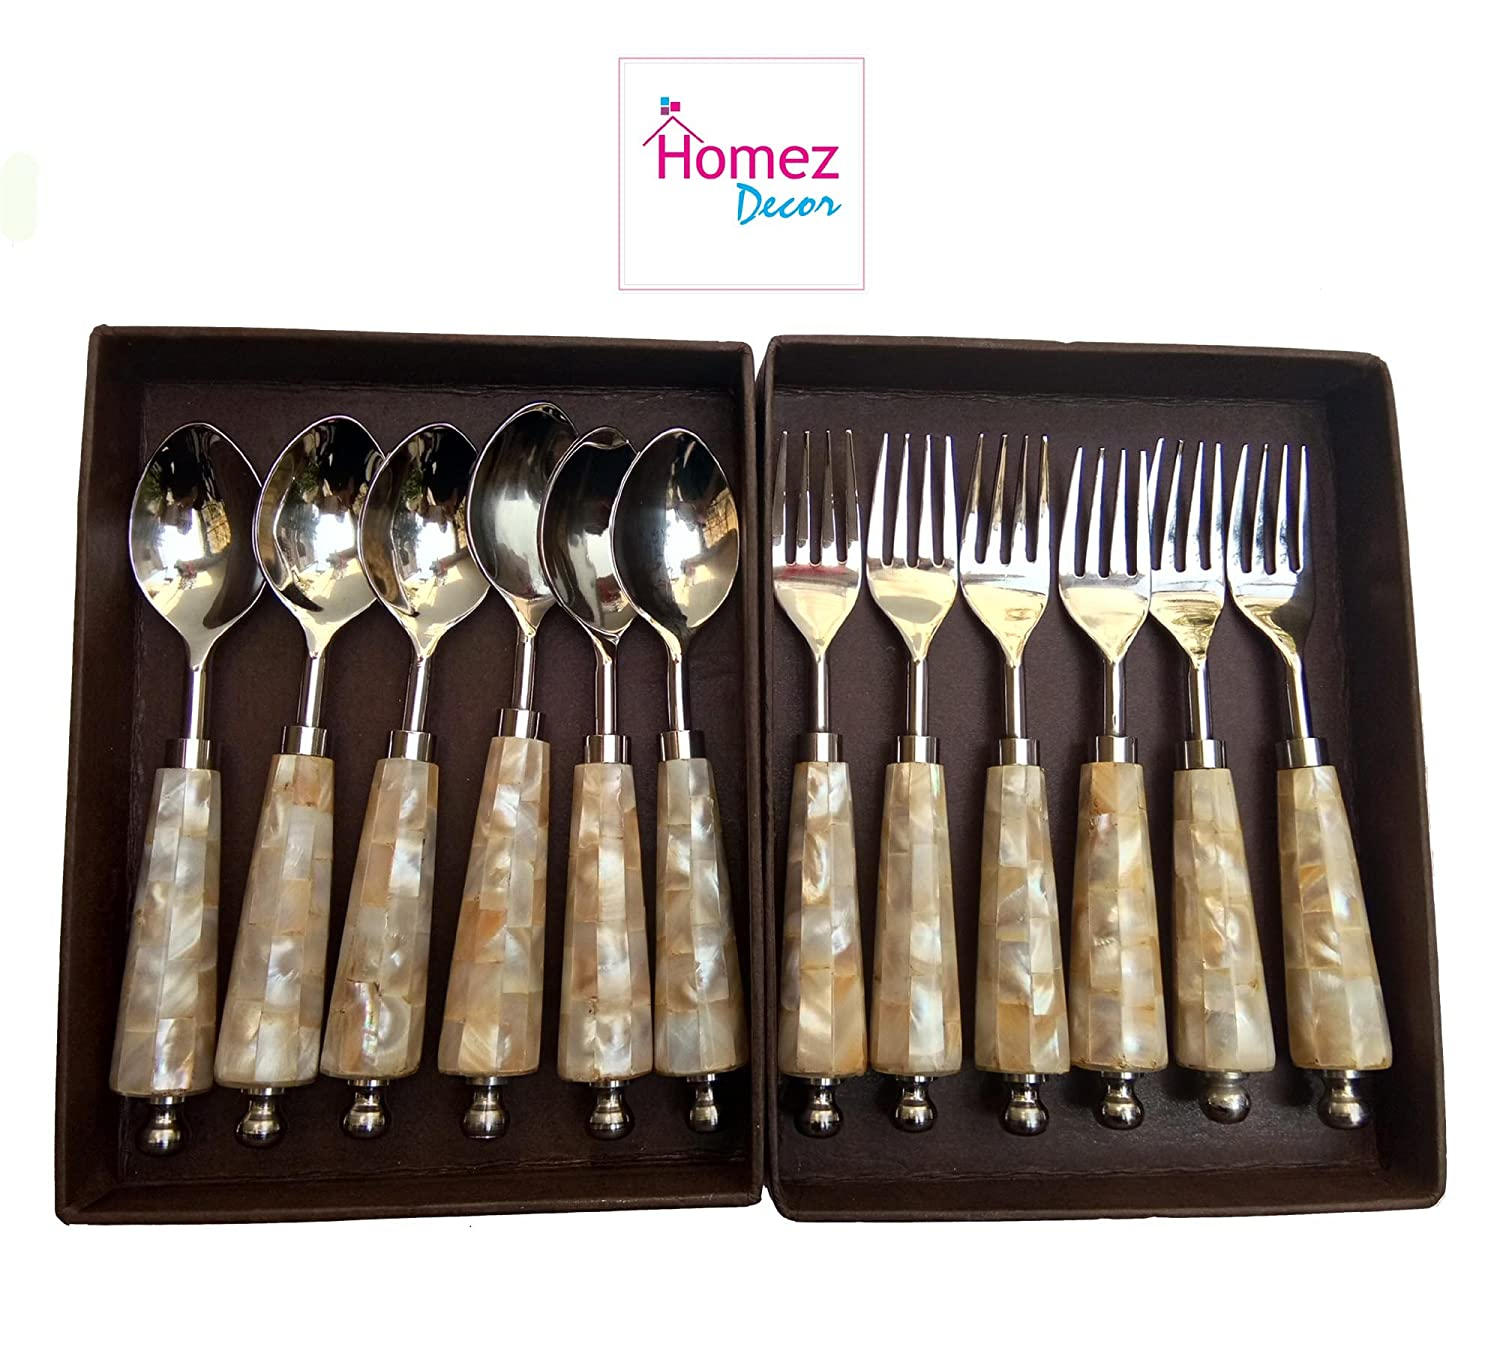 Homez Decor12 Piece Round Mother Of Pearl Cutlery Set Contains 6